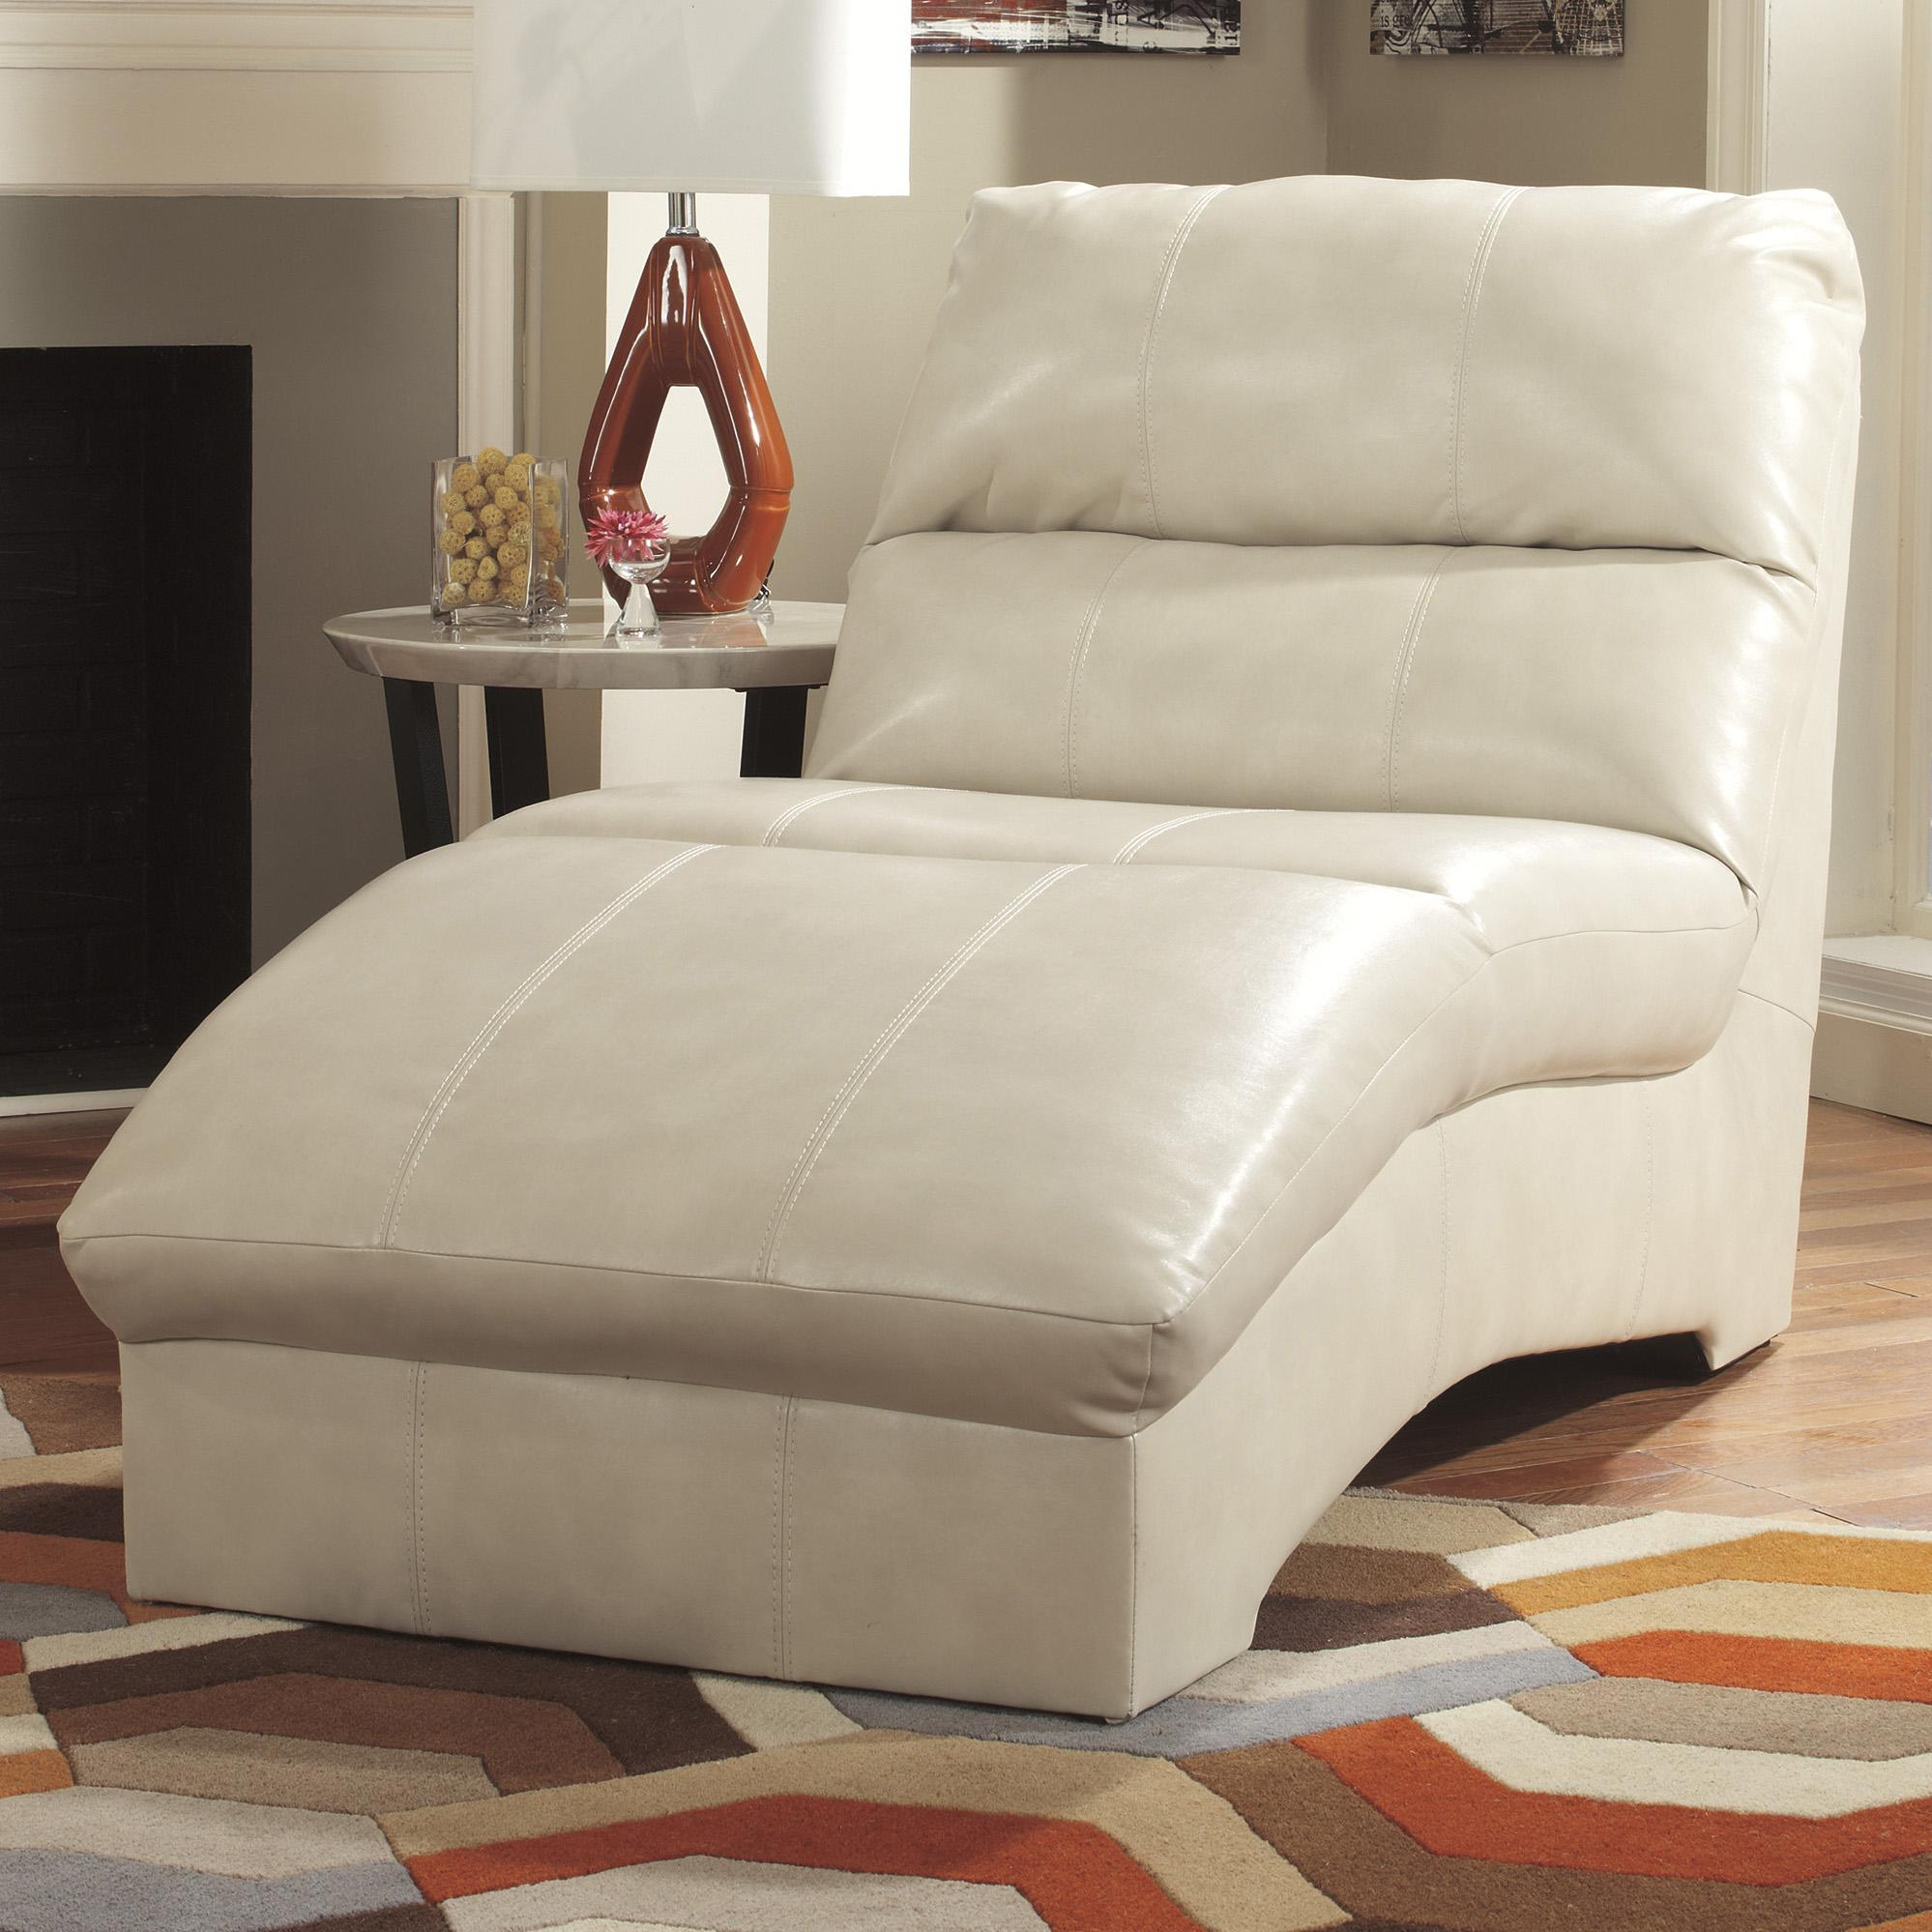 Benchcraft Paulie DuraBlend® - Taupe Chaise - Item Number: 2700015